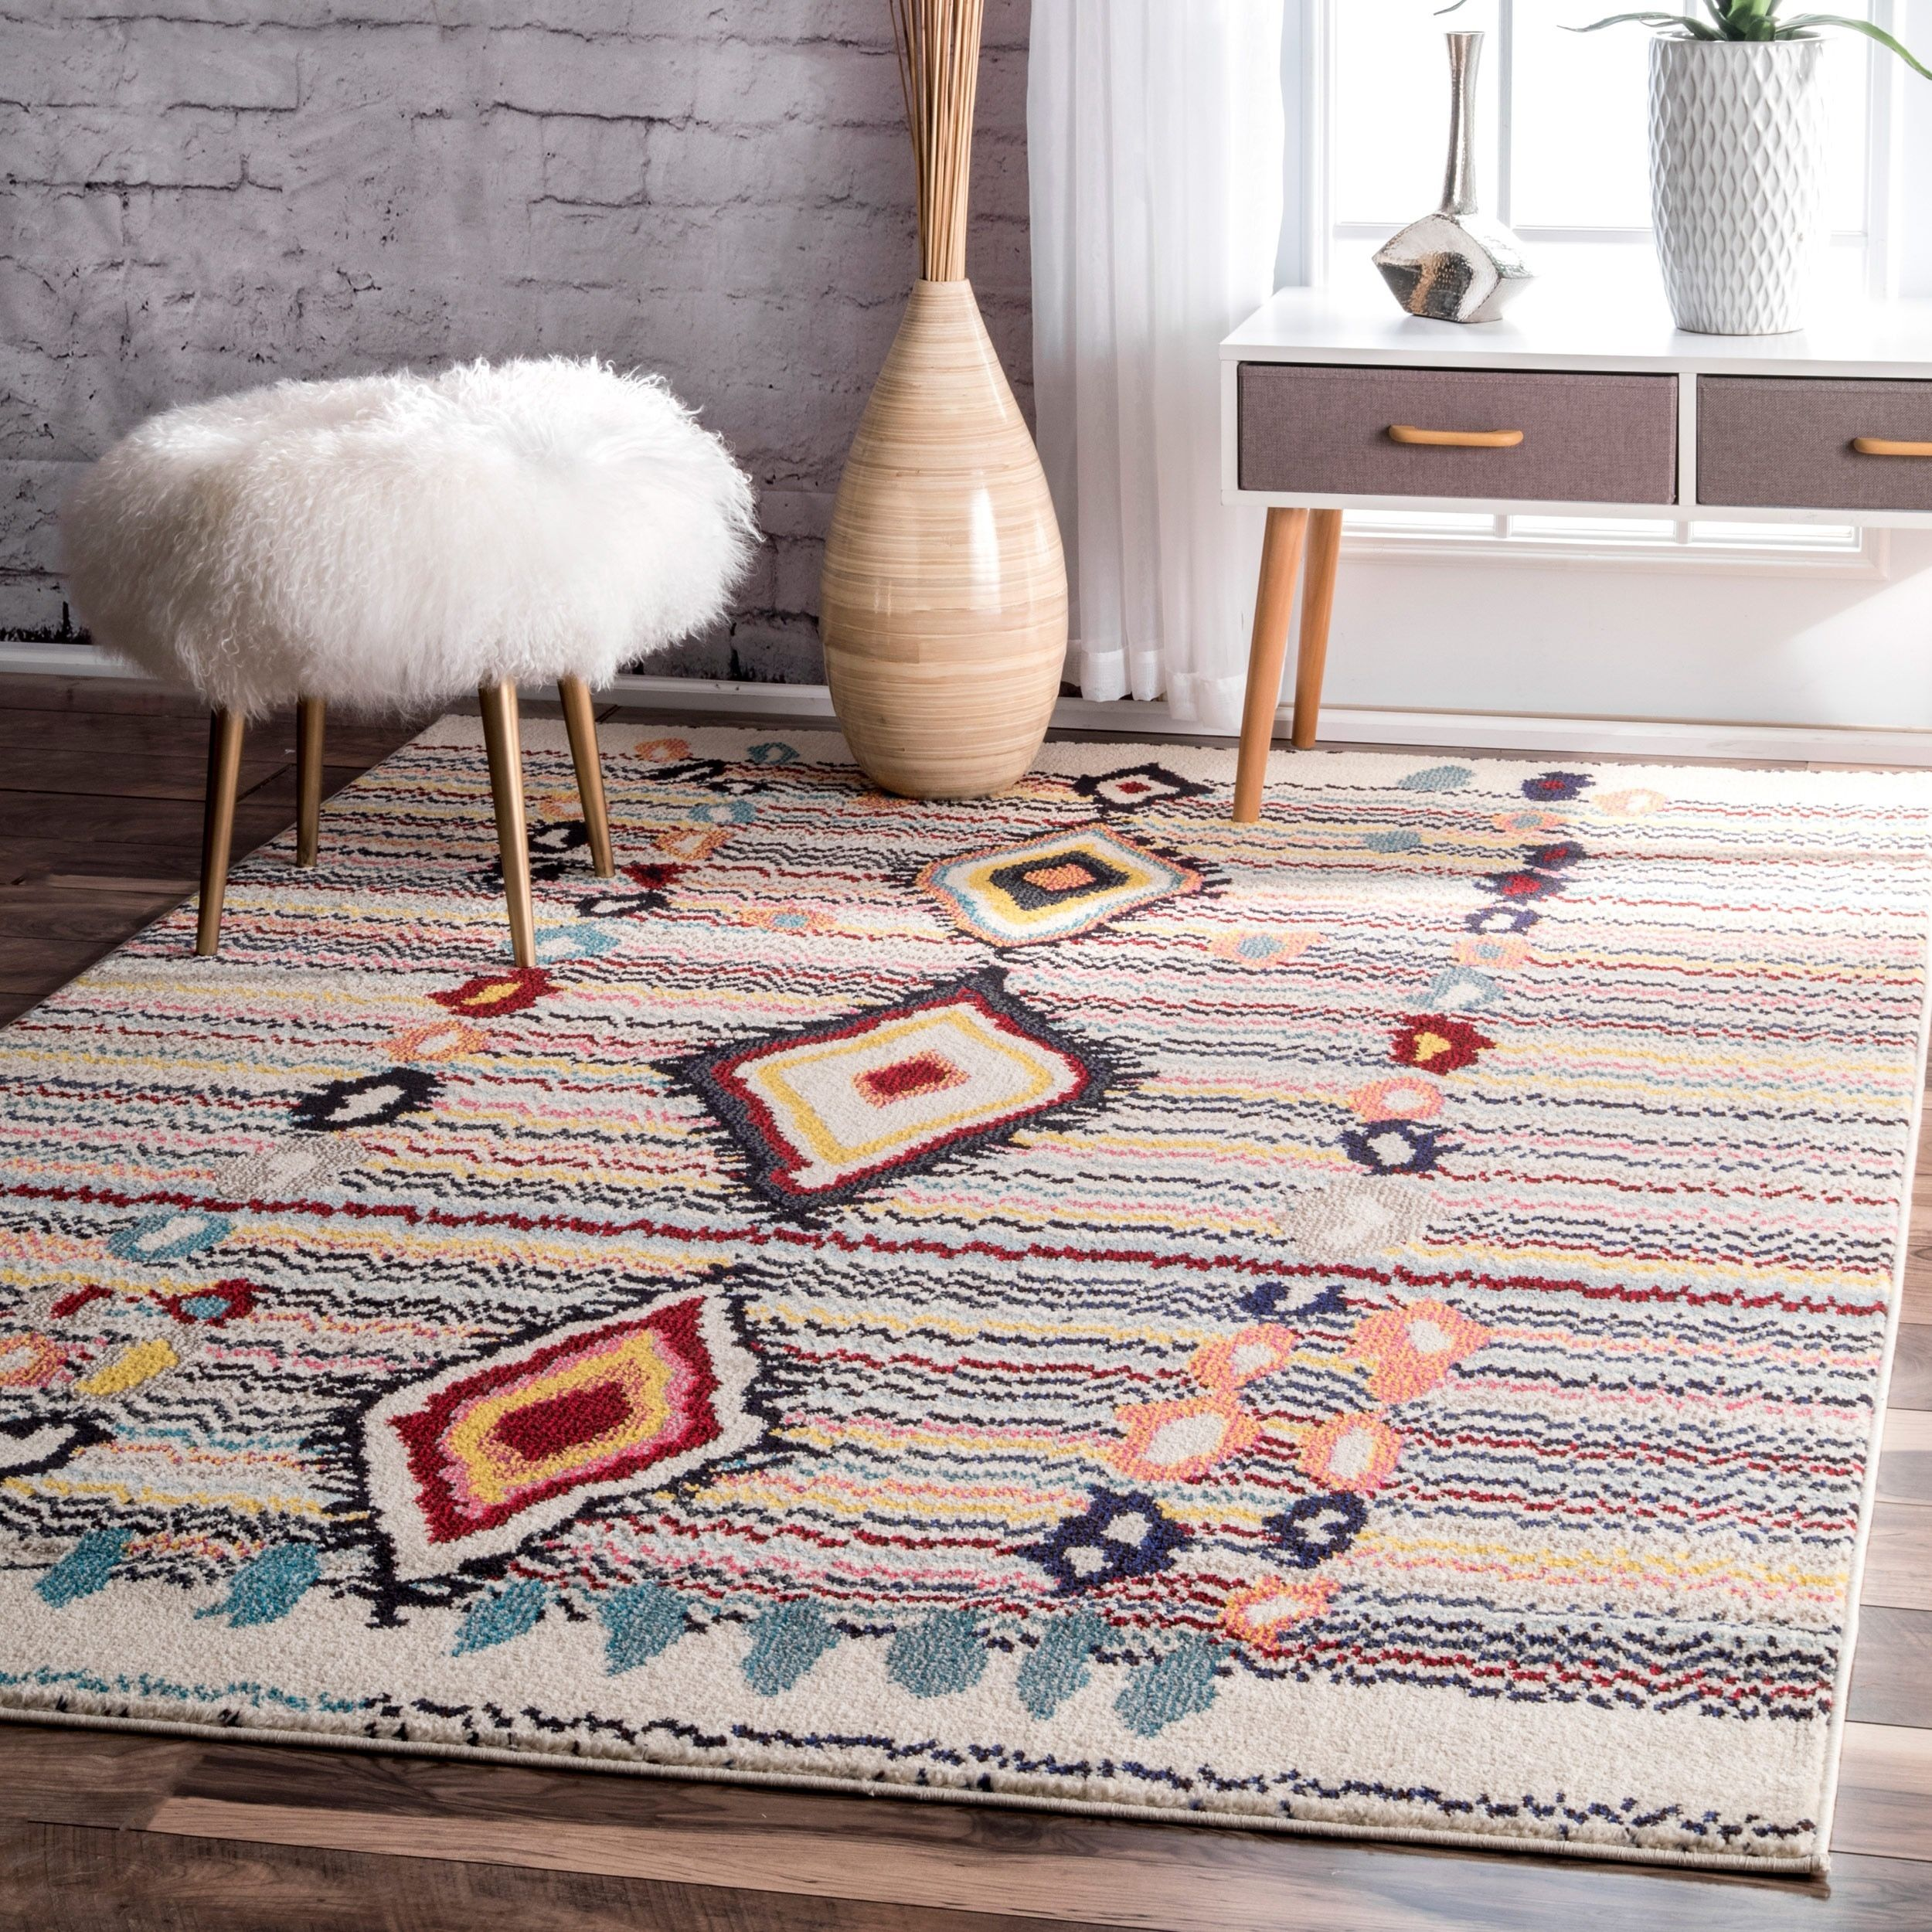 Nuloom 7x9 10x14 Rugs Use Large Area To Bring A New Mood